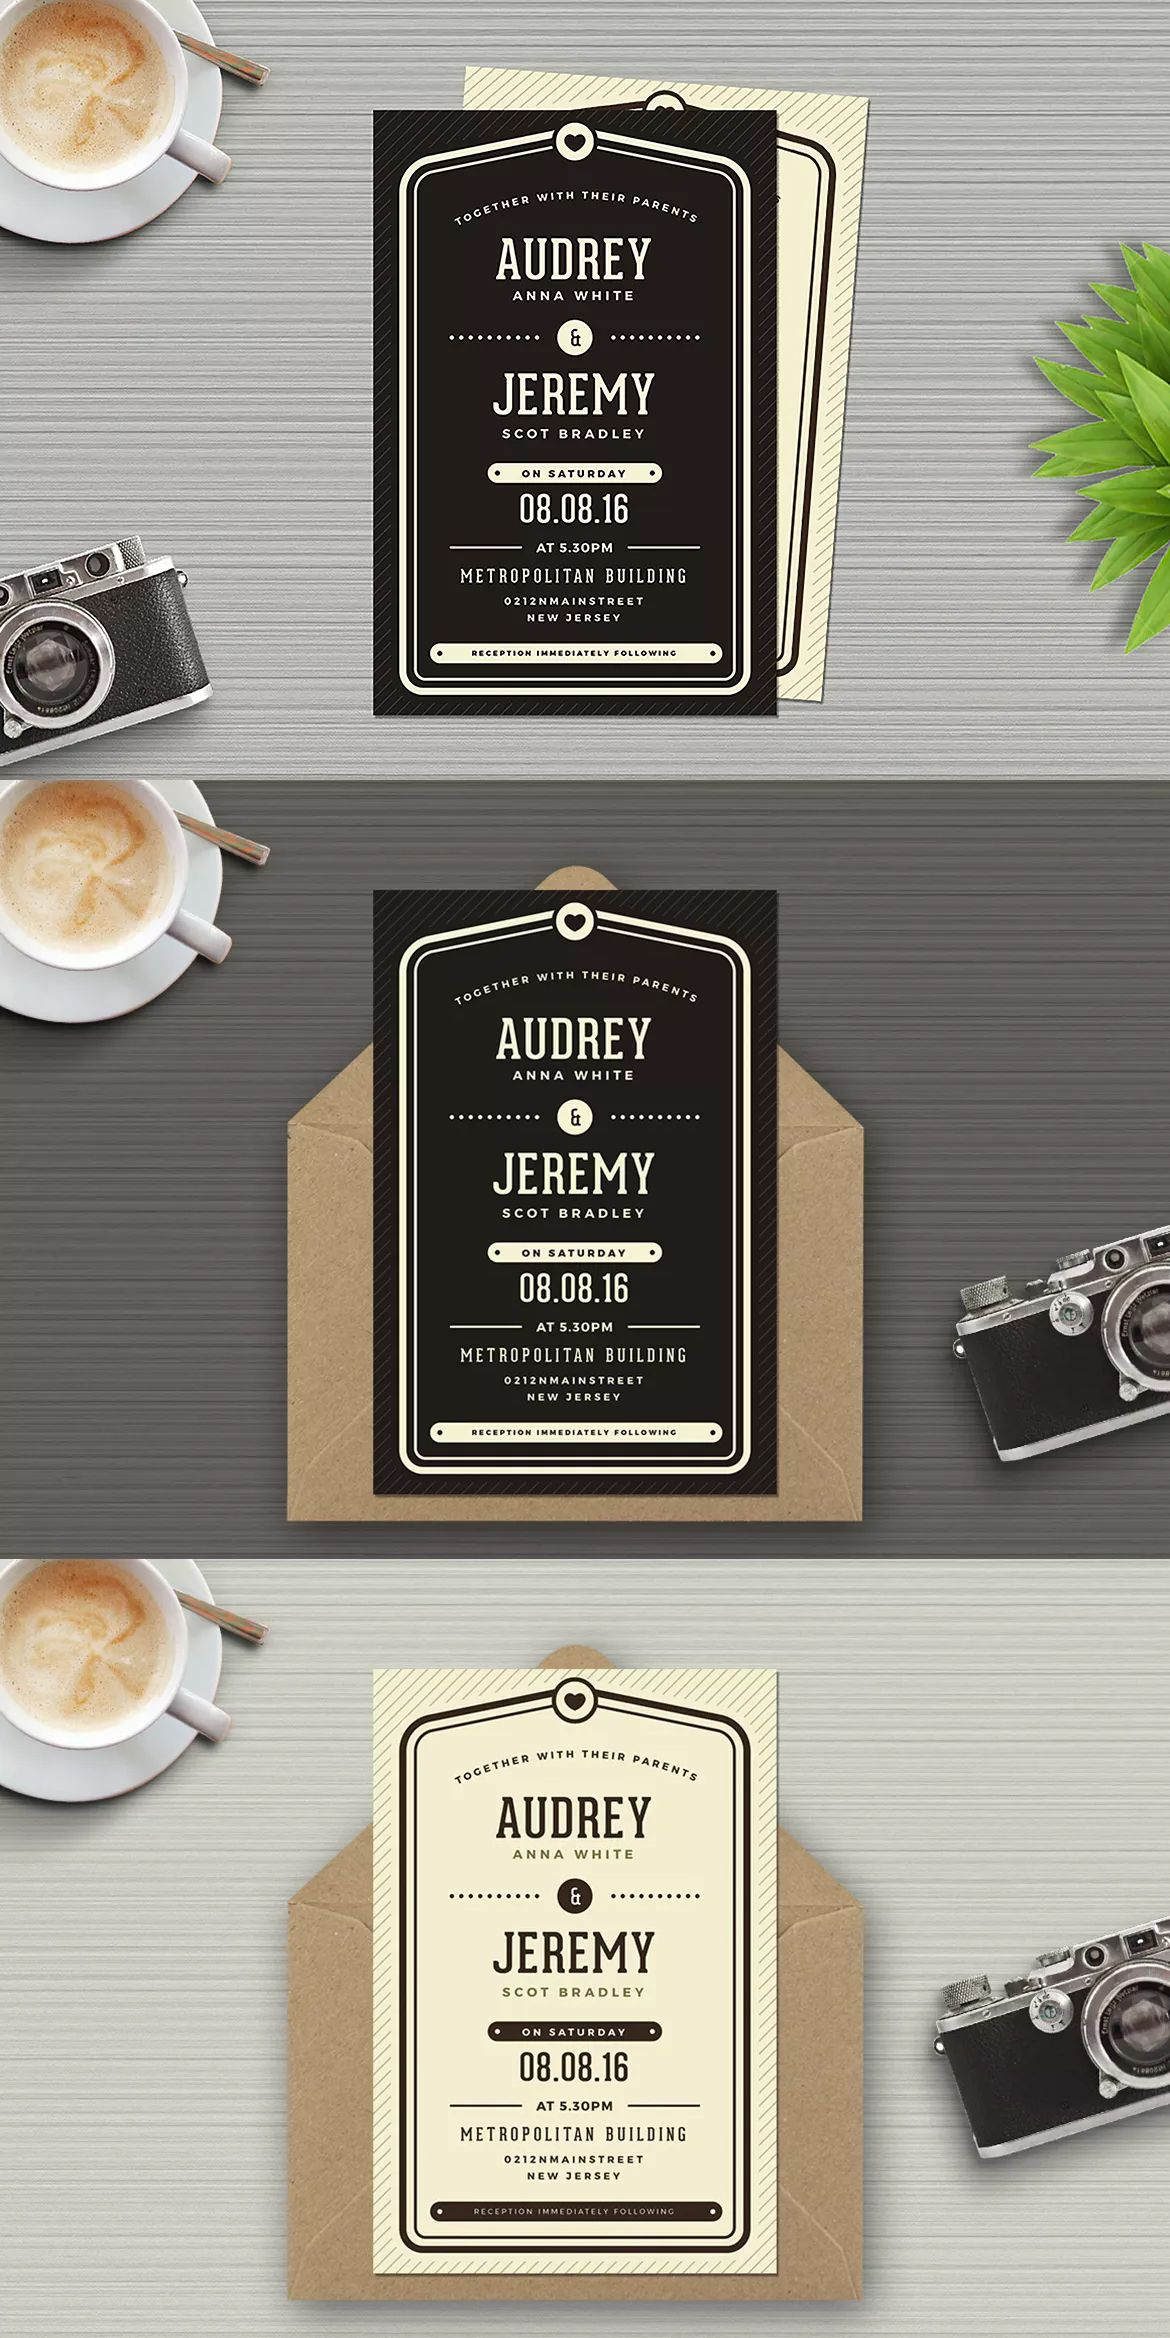 Simple Wedding Invitation Template AI, PSD | Wedding Invitation Card ...